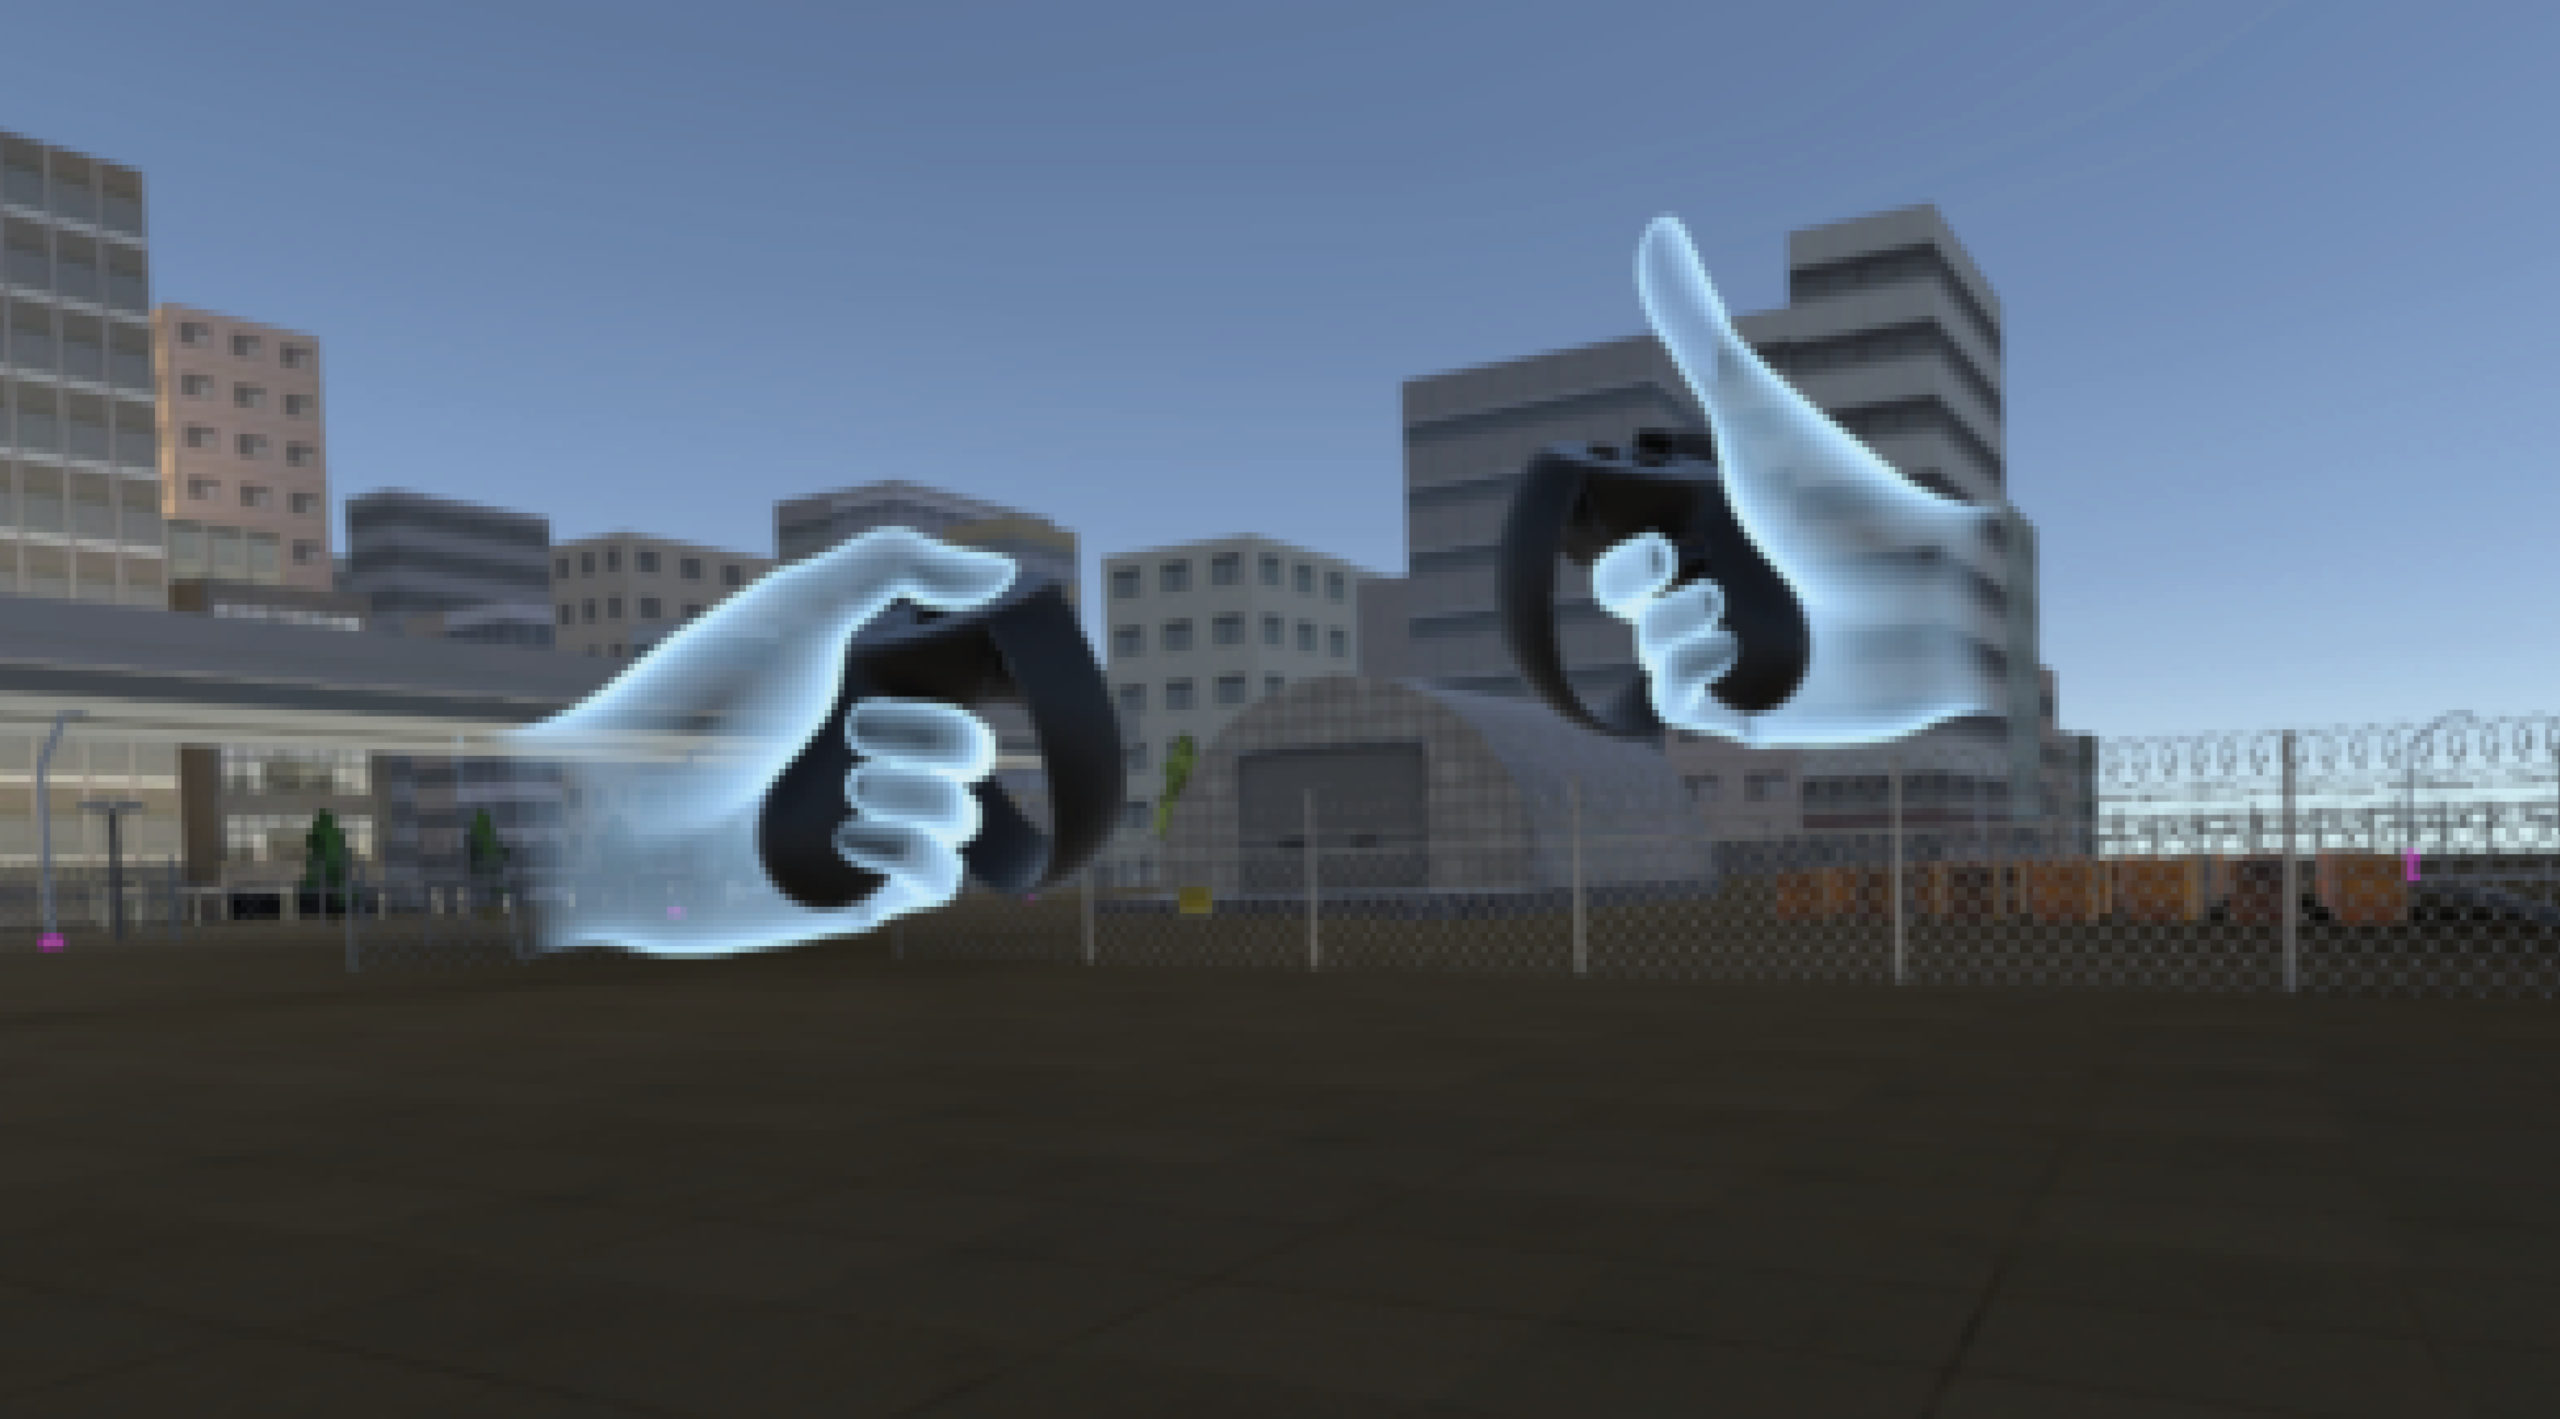 virtual reality hypothetical facilities augmented reality physical security